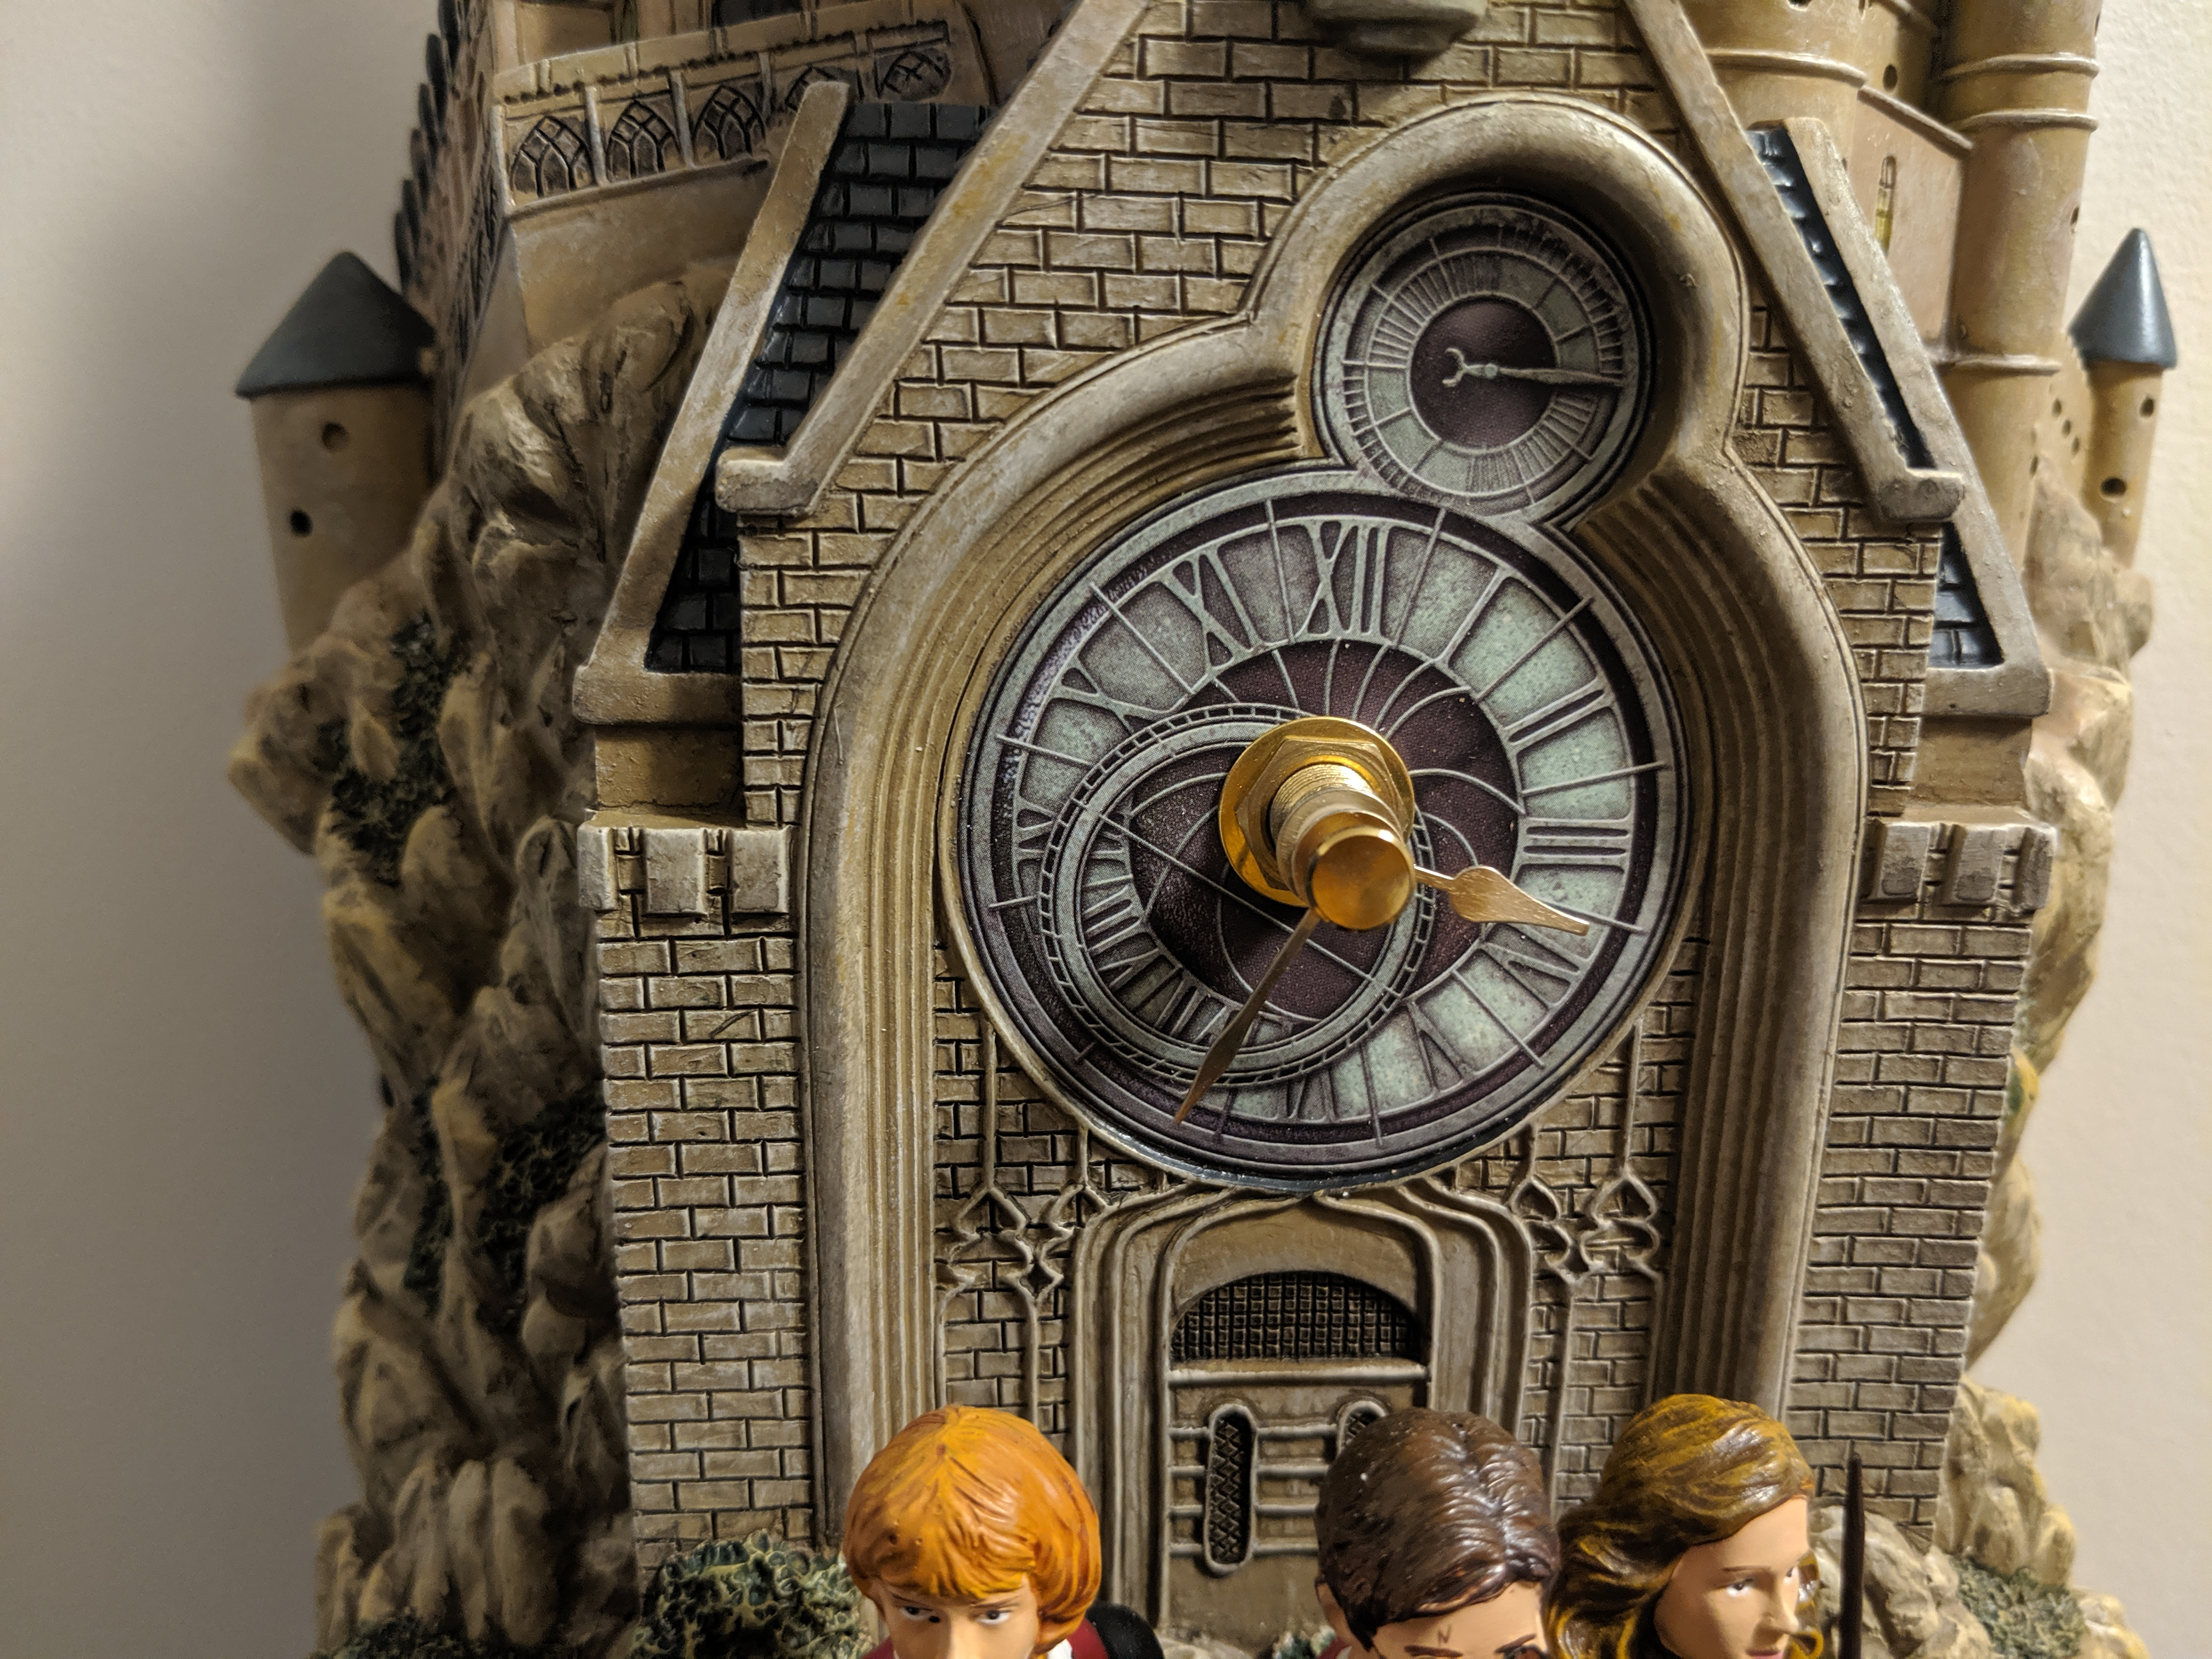 The working clock made to look like the Hogwarts clock tower